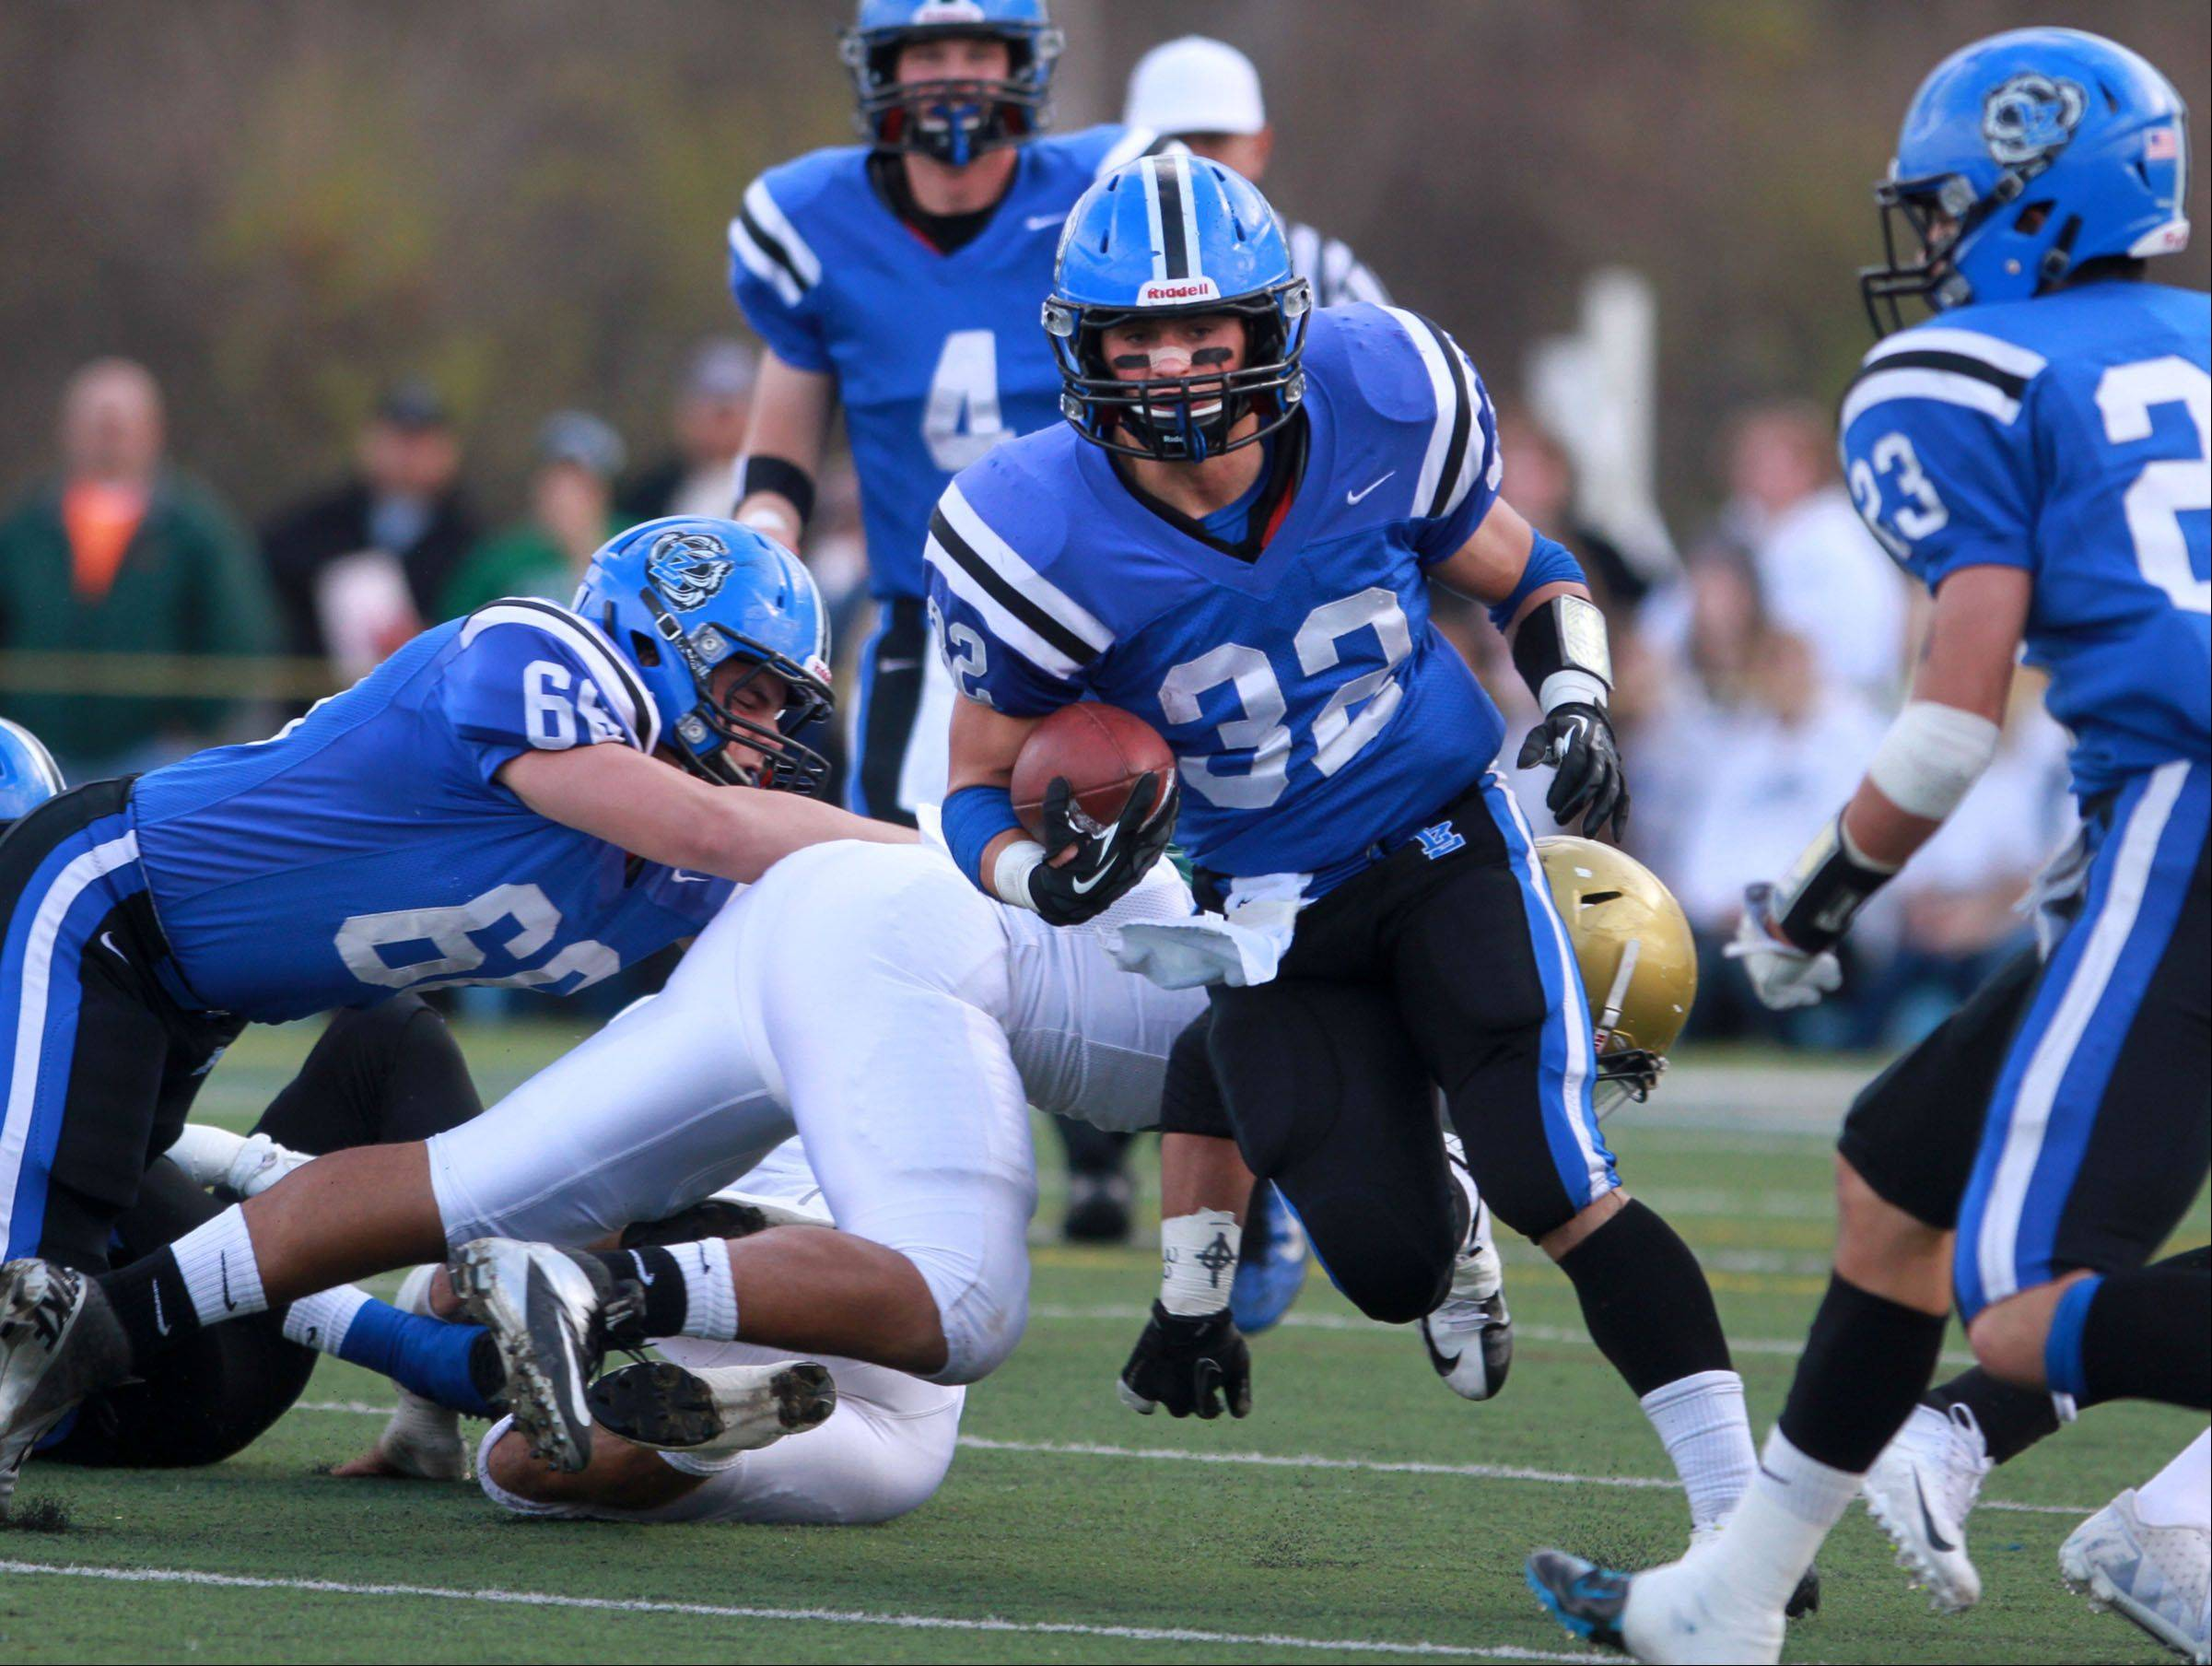 Lake Zurich running-back Connor Schrader breaks through a hole against Rockford Boylan as Lake Zurich wins the Class 7A state quarterfinal game at home on Saturday.